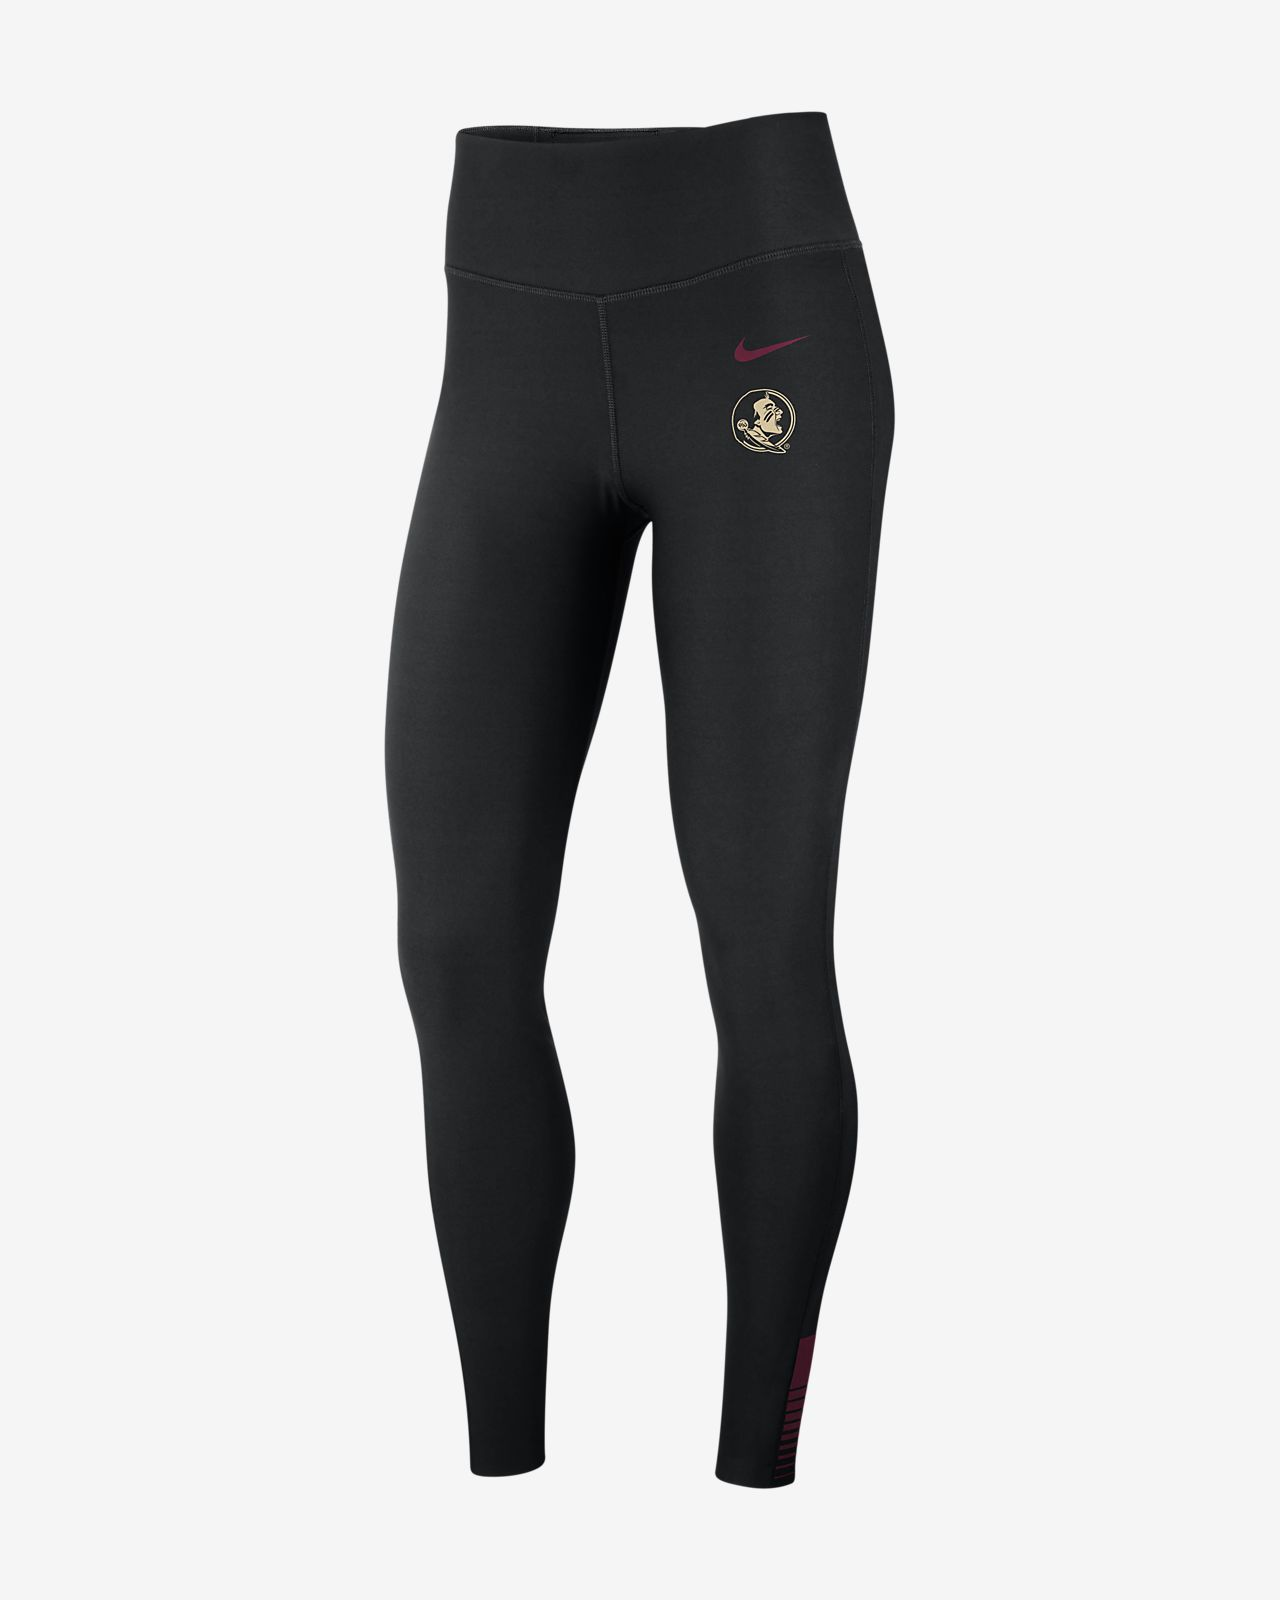 Nike College Power Sculpt (Florida State) Women's High-Rise Training Tights